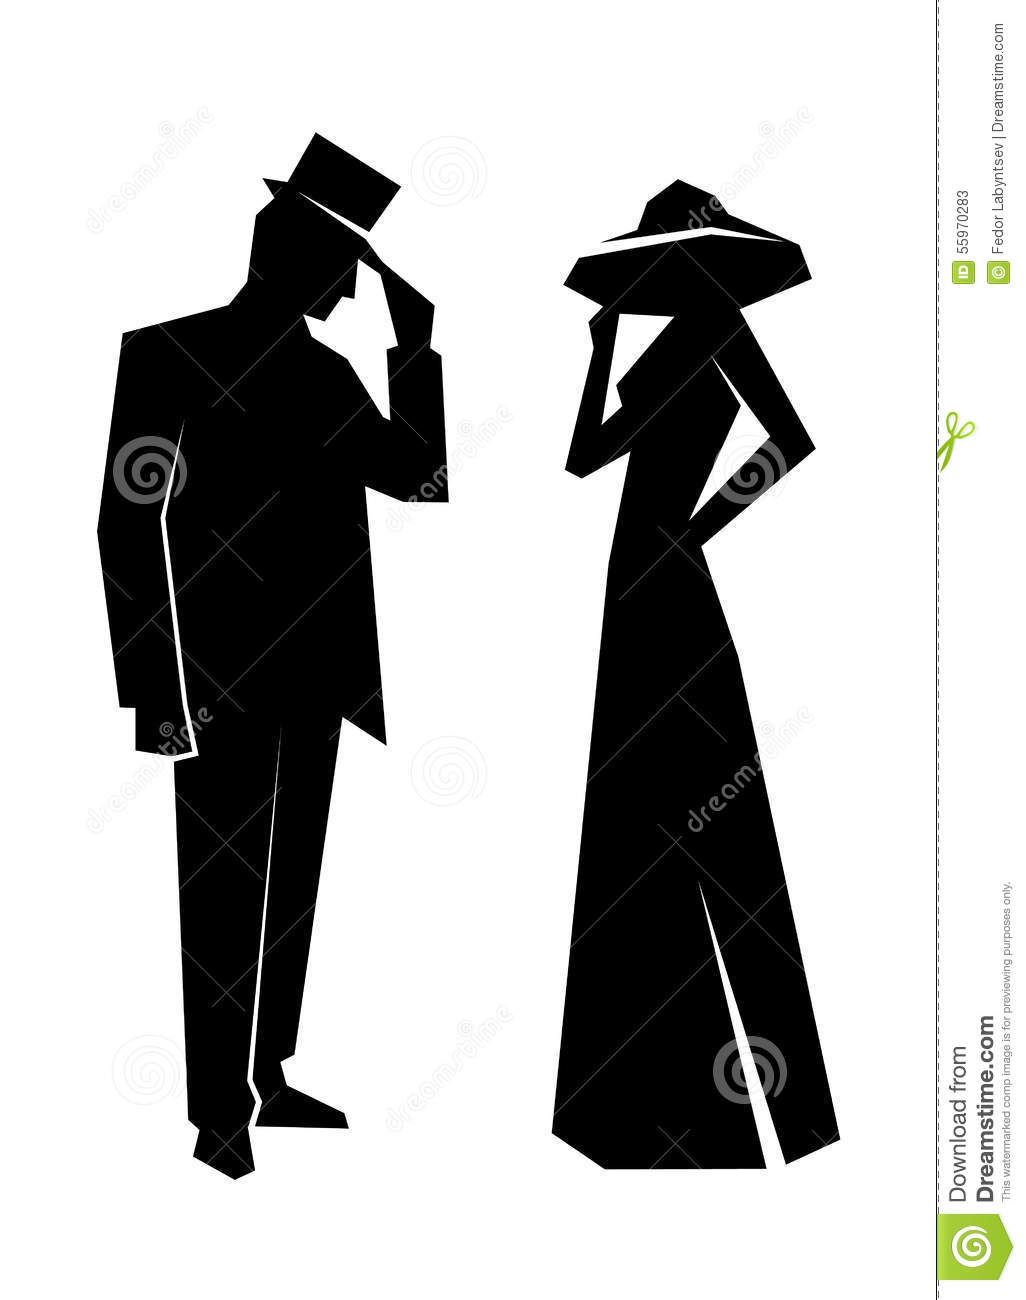 Silhouette Of The Lady And Gentleman Stock Vector - Image ...